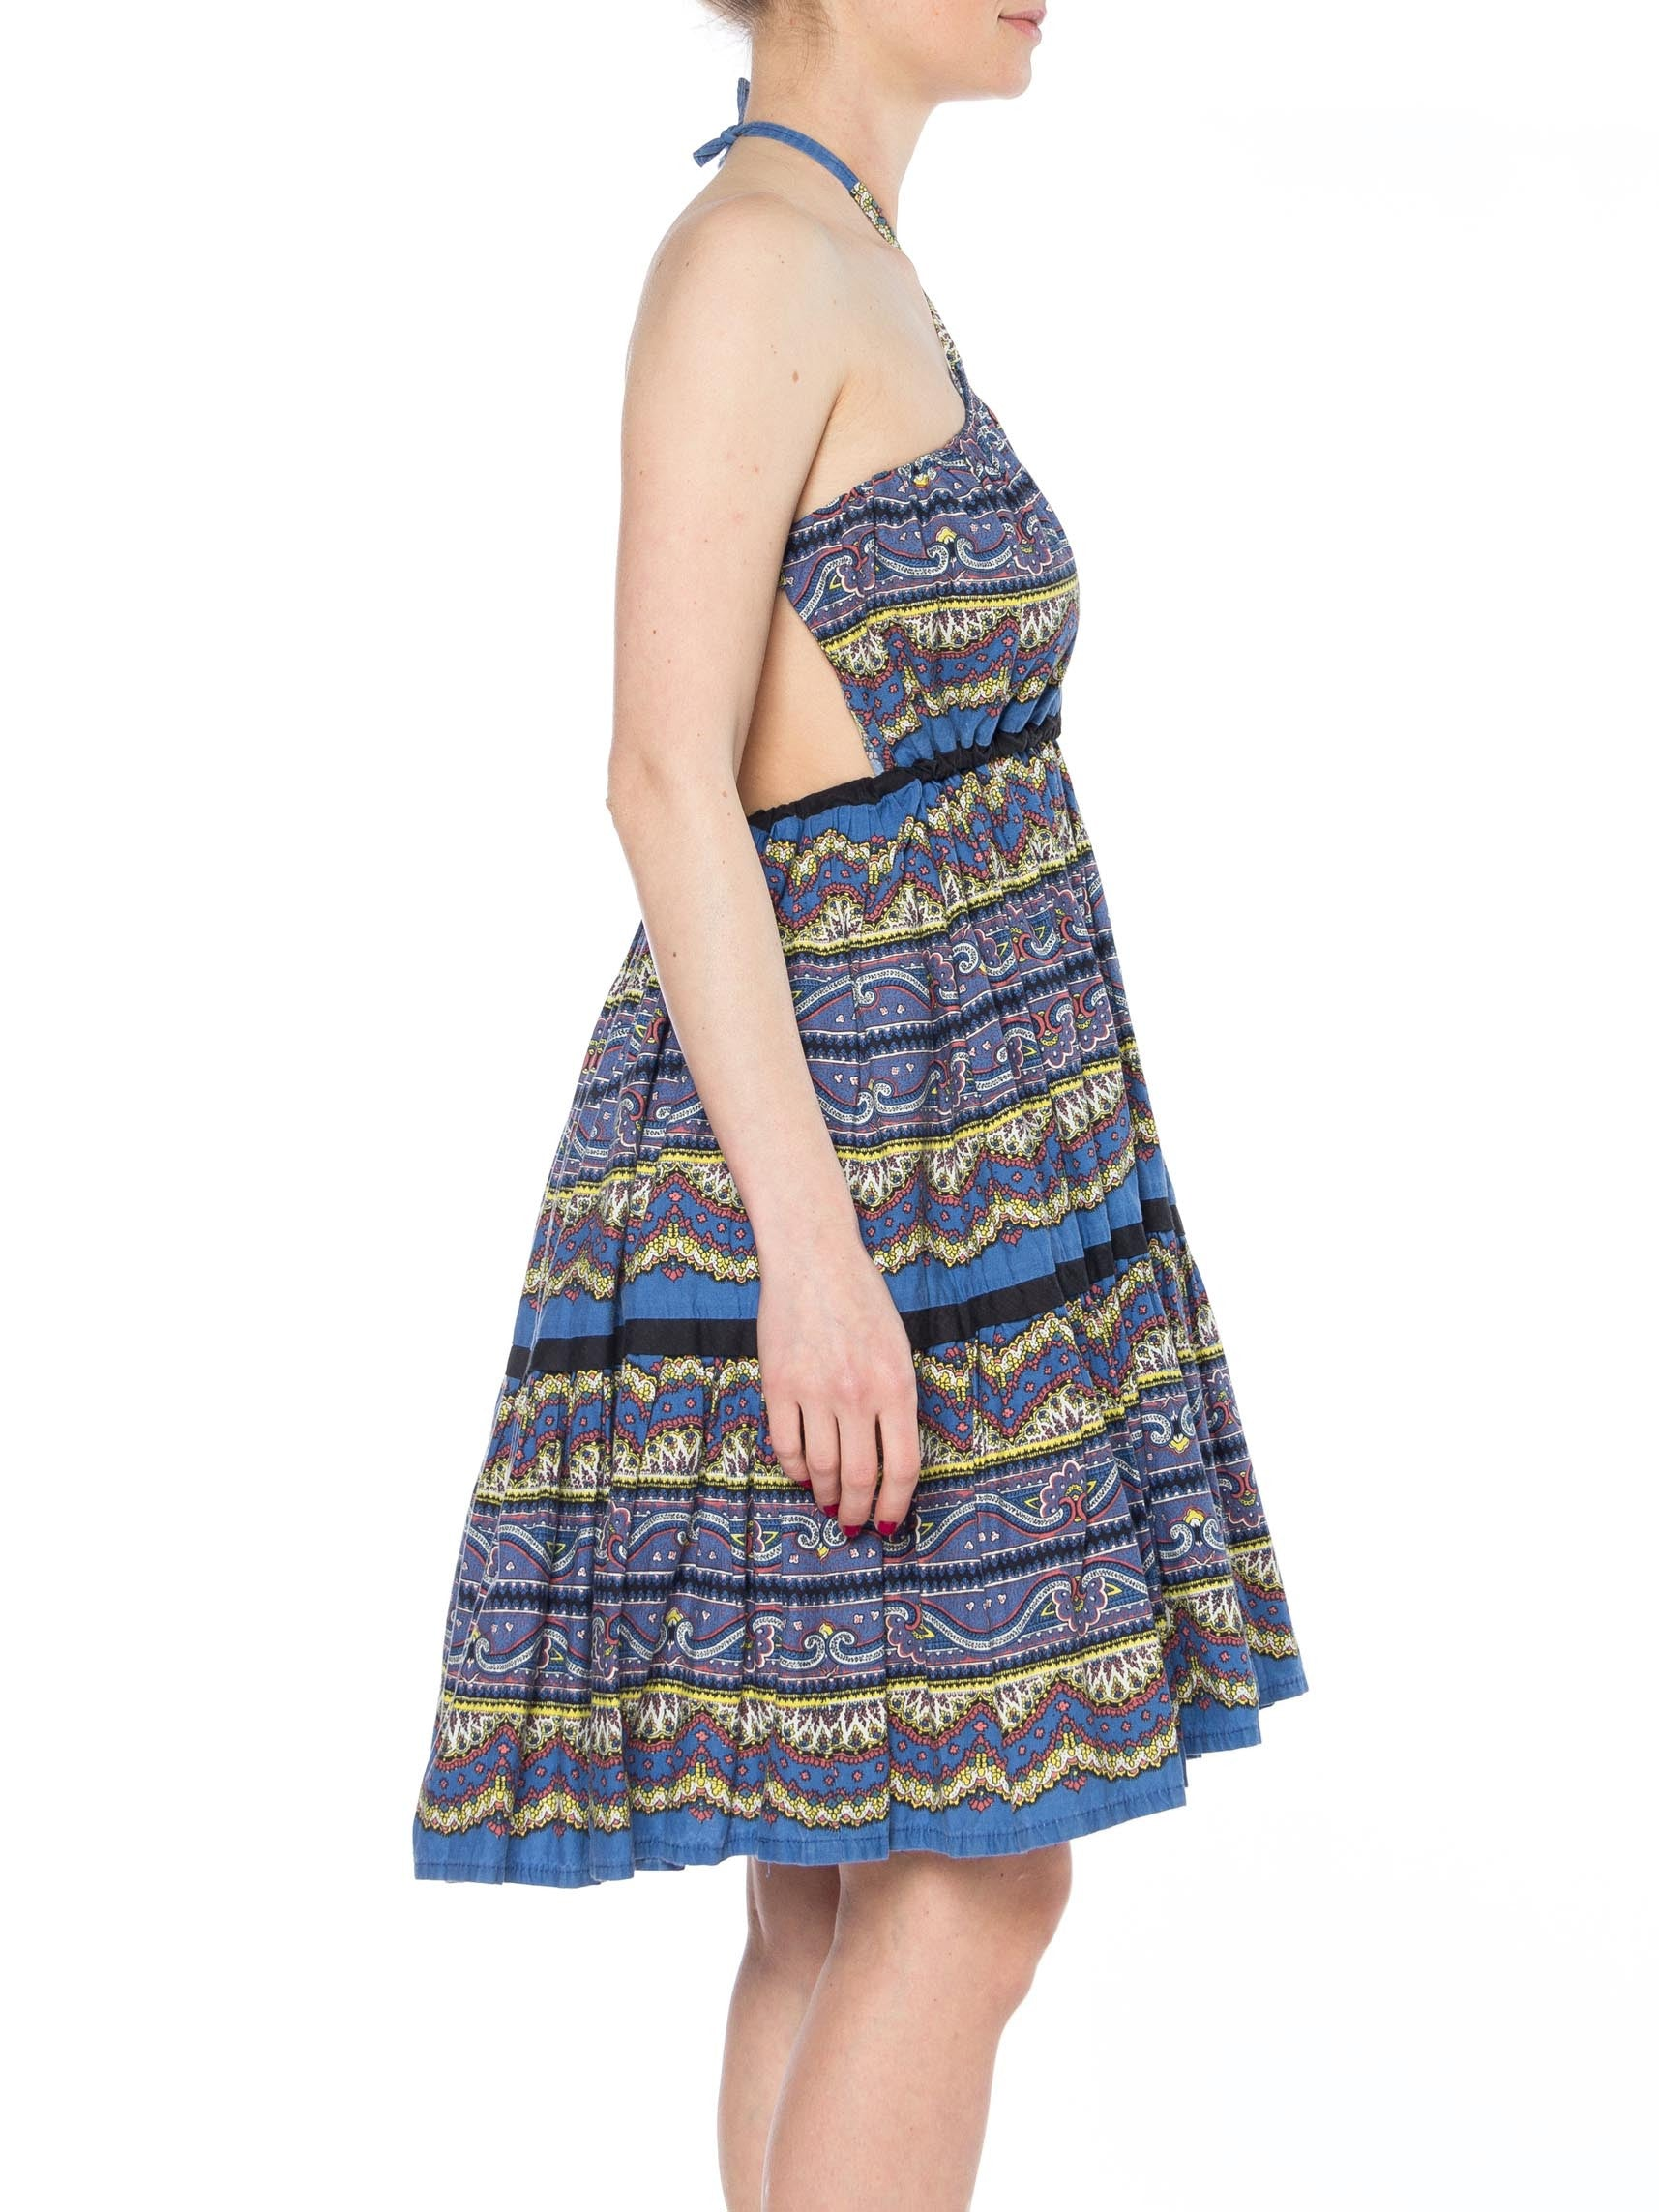 MORPHEW COLLECTION Blue & White Paisley Cotton Halter Dress Made From A 1950S Skirt